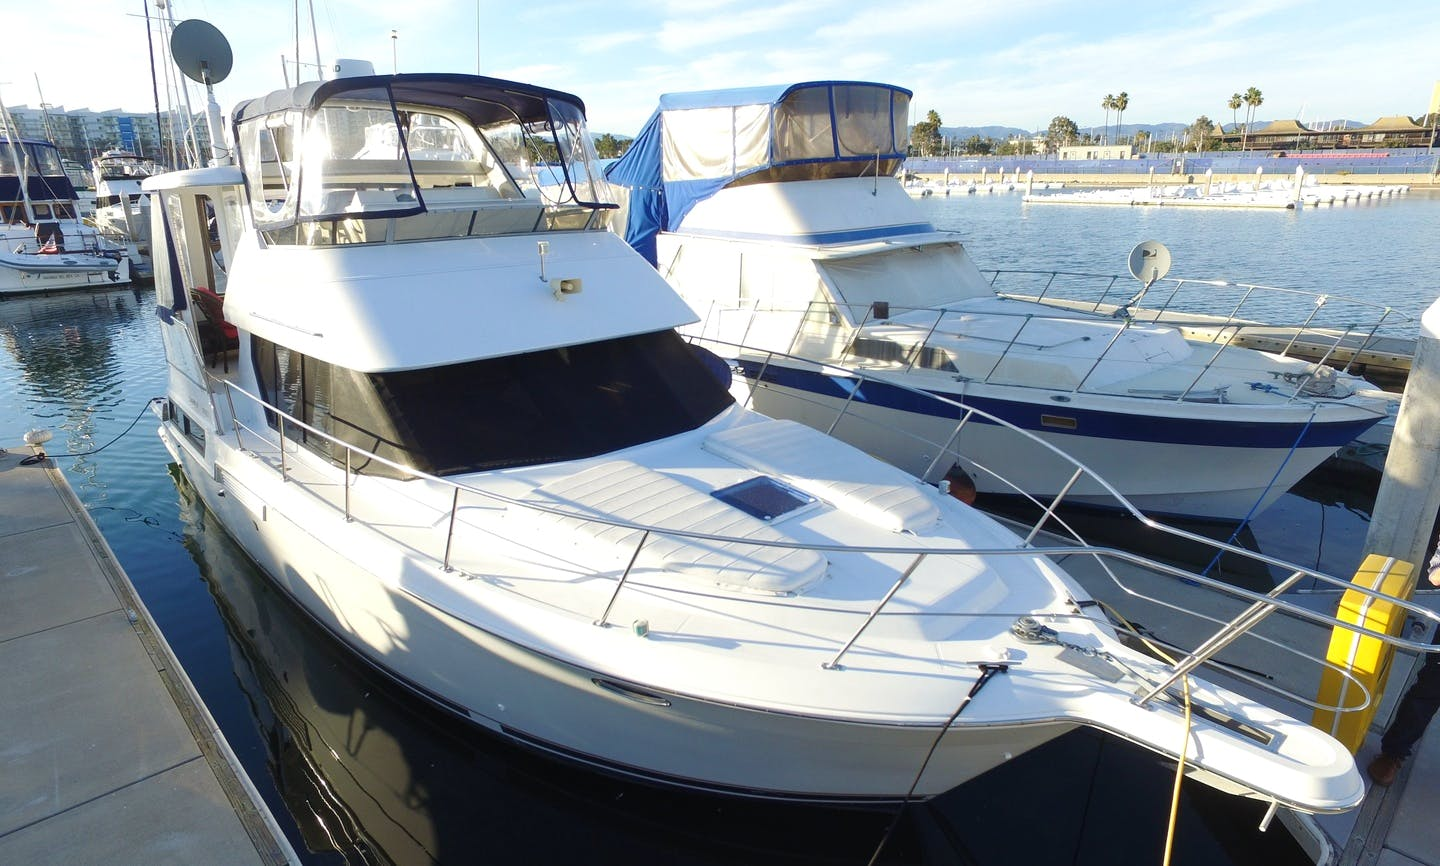 43' Motor Yacht Rental In Marina del Rey, California for up to 12 person